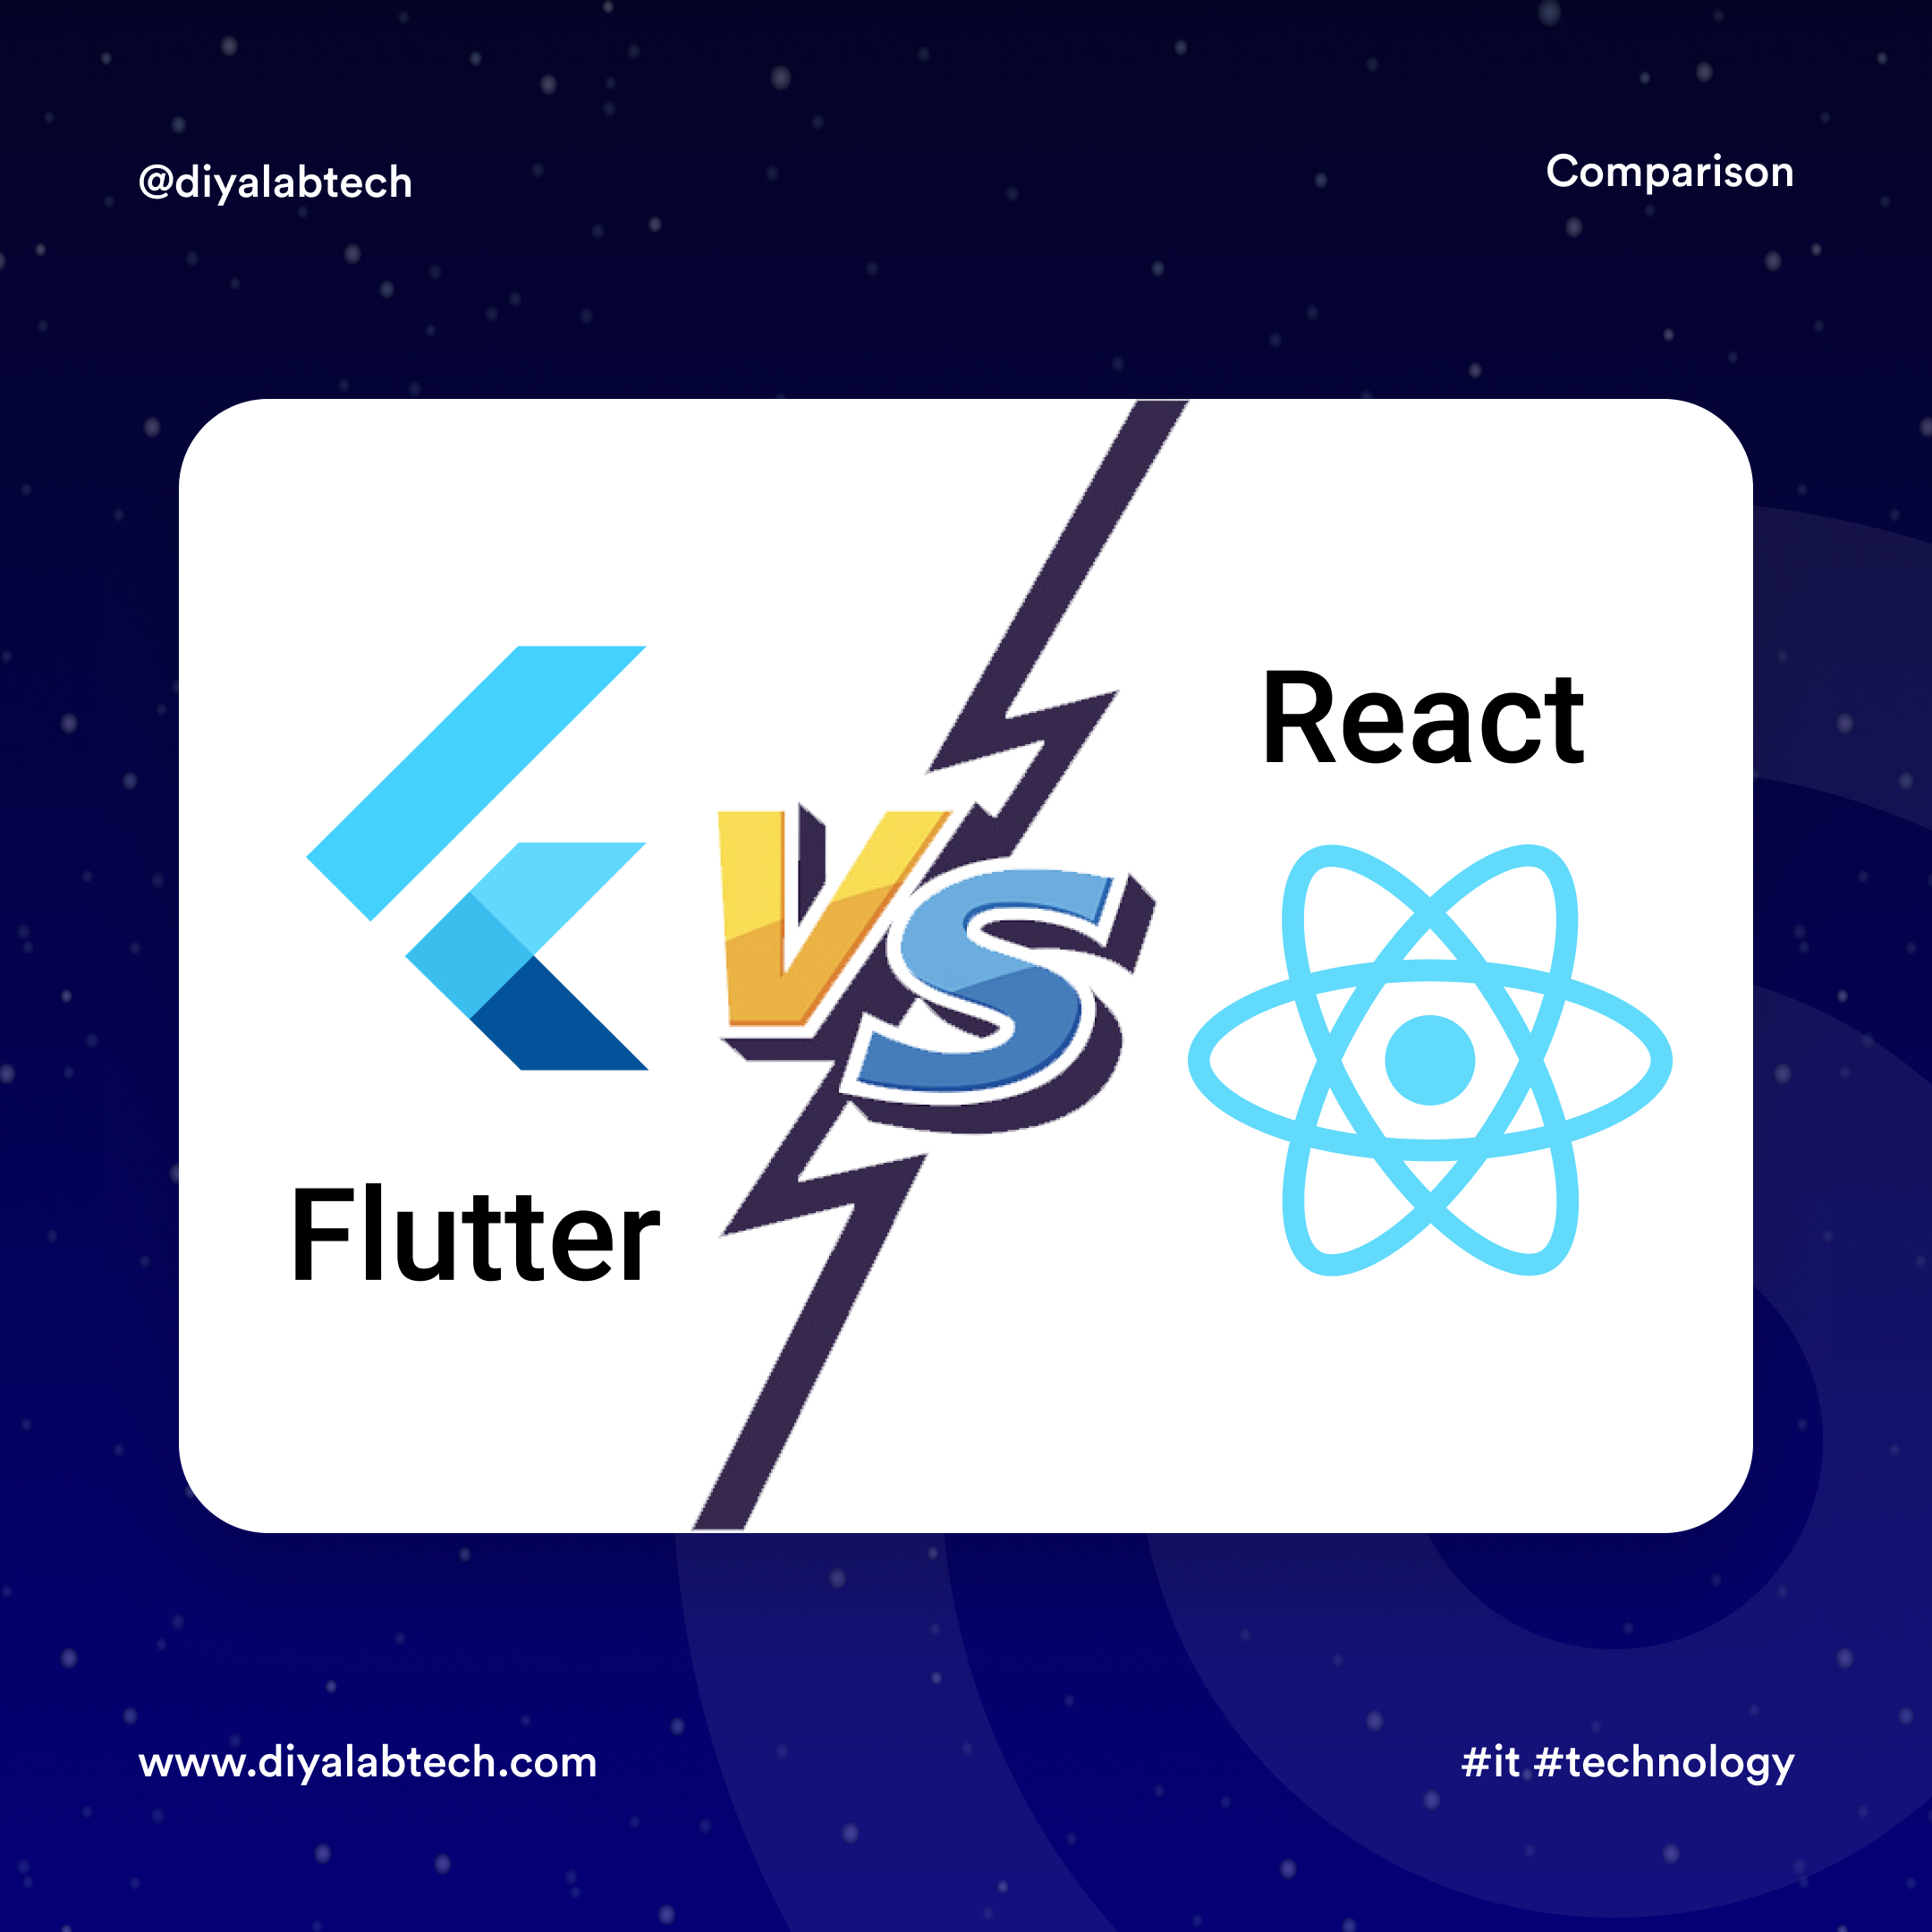 93898flutter-vs-reactnative1.jpg